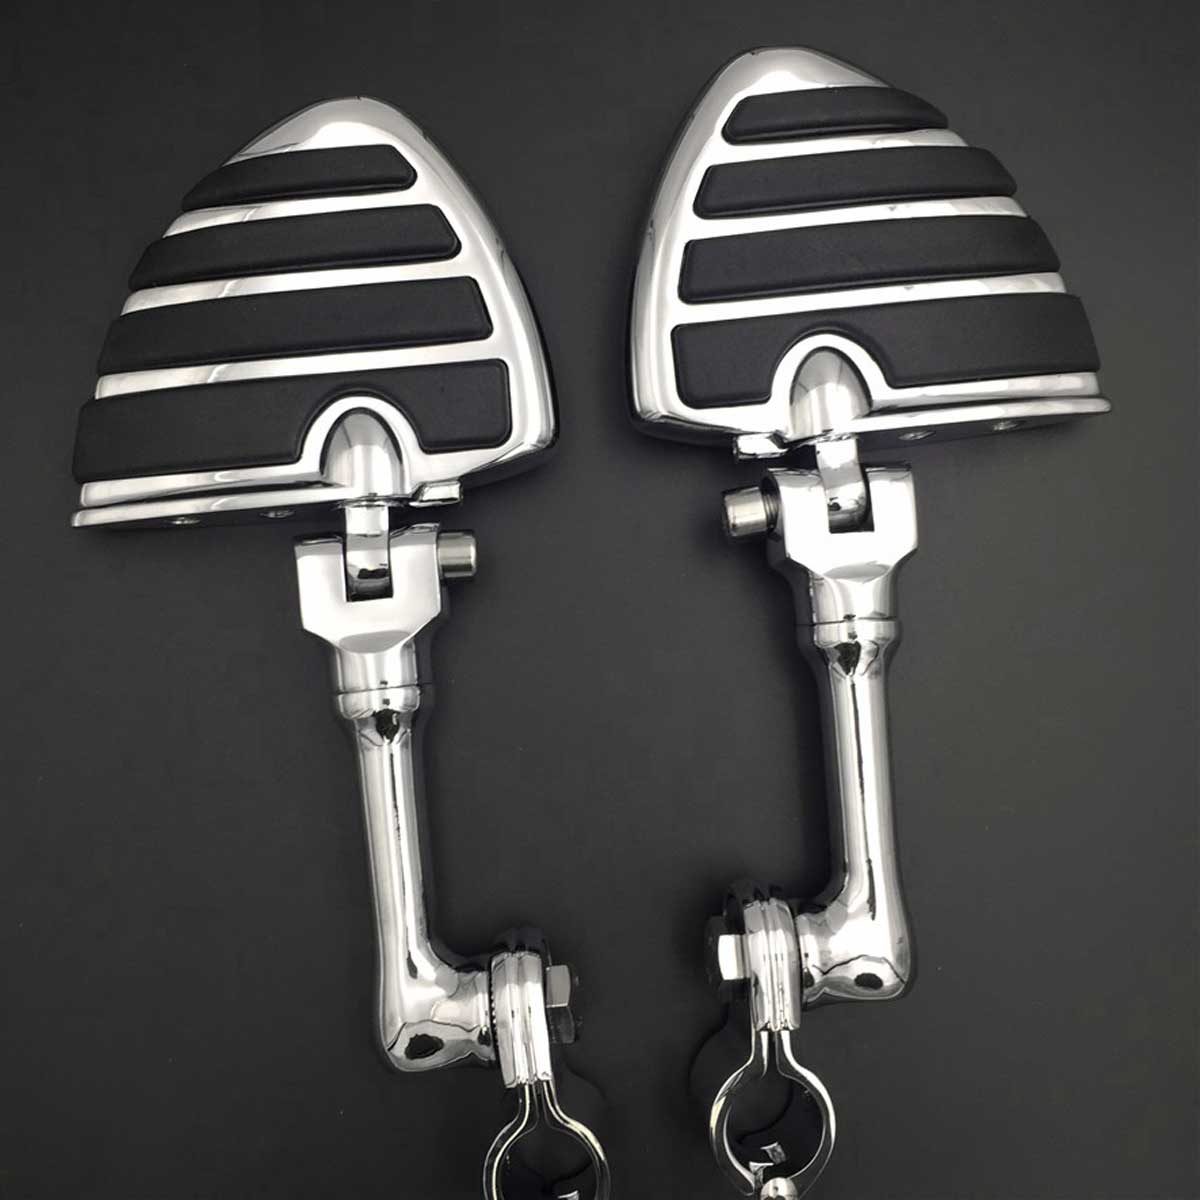 """New Offset Adjustable Highway Peg Kuryakyn Large Foot pegs 1.25/"""" Clamps Chrome"""